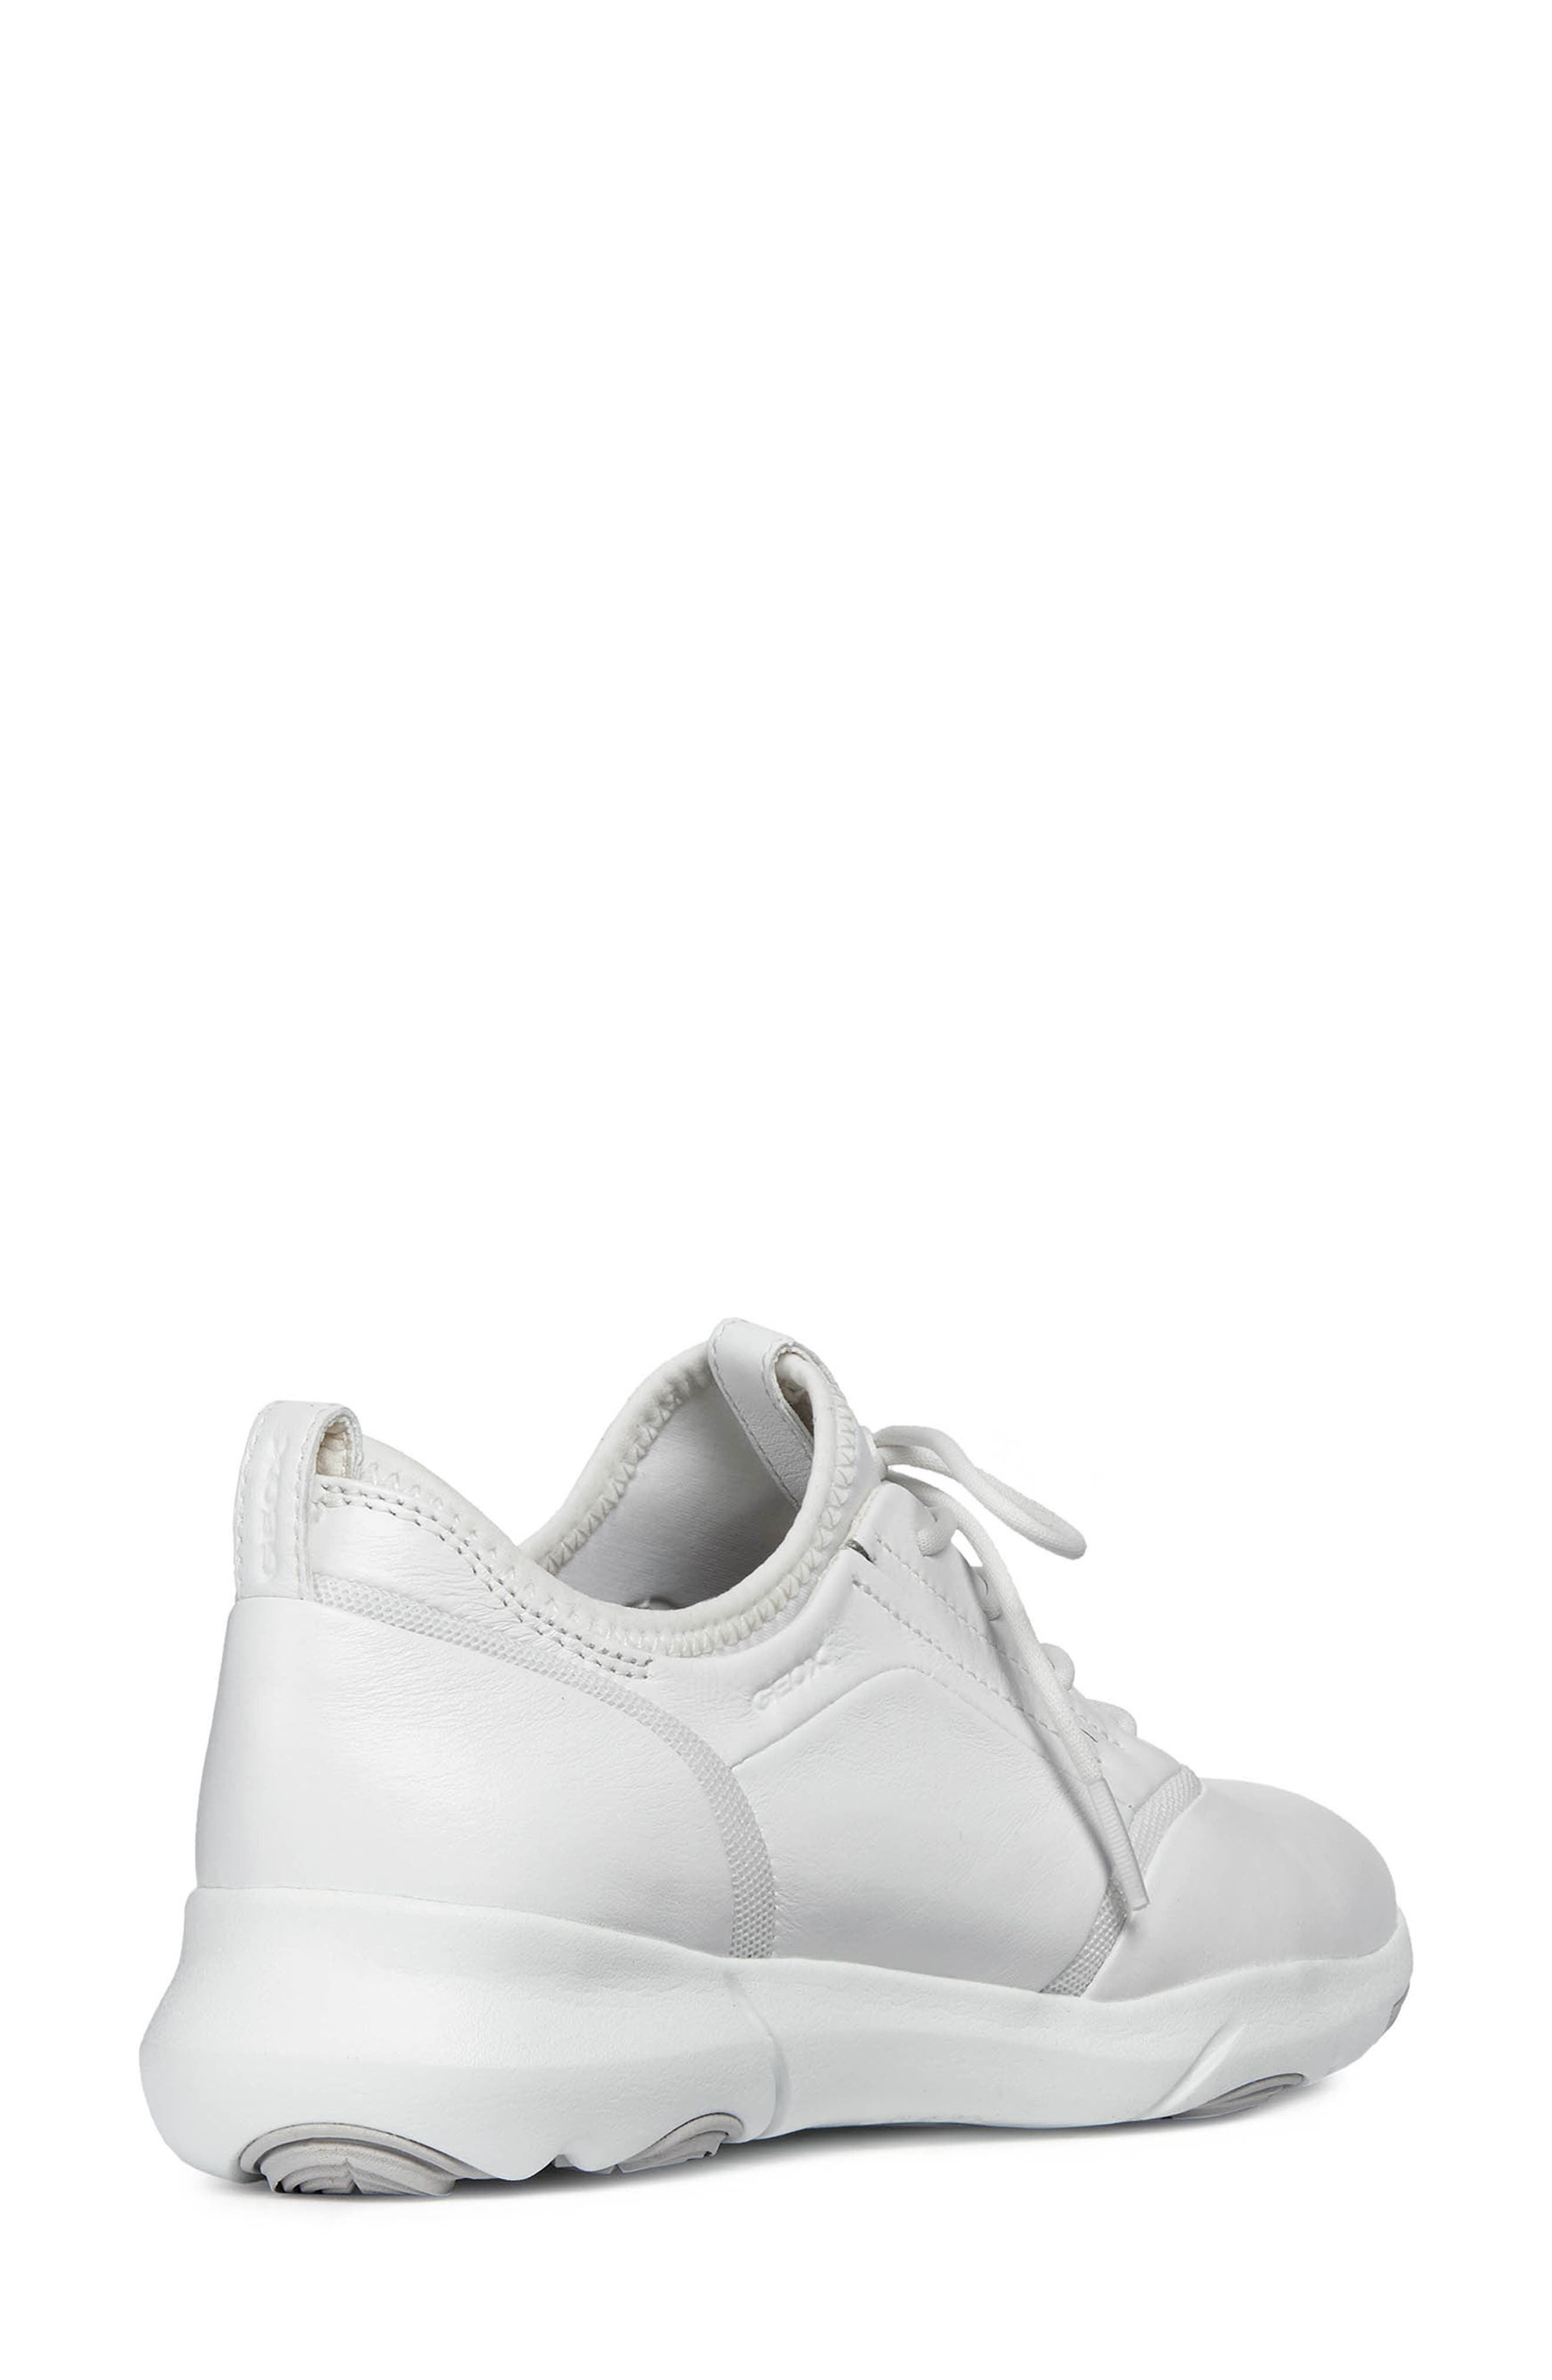 Nebula S 2 Low Top Sneaker,                             Alternate thumbnail 7, color,                             WHITE LEATHER